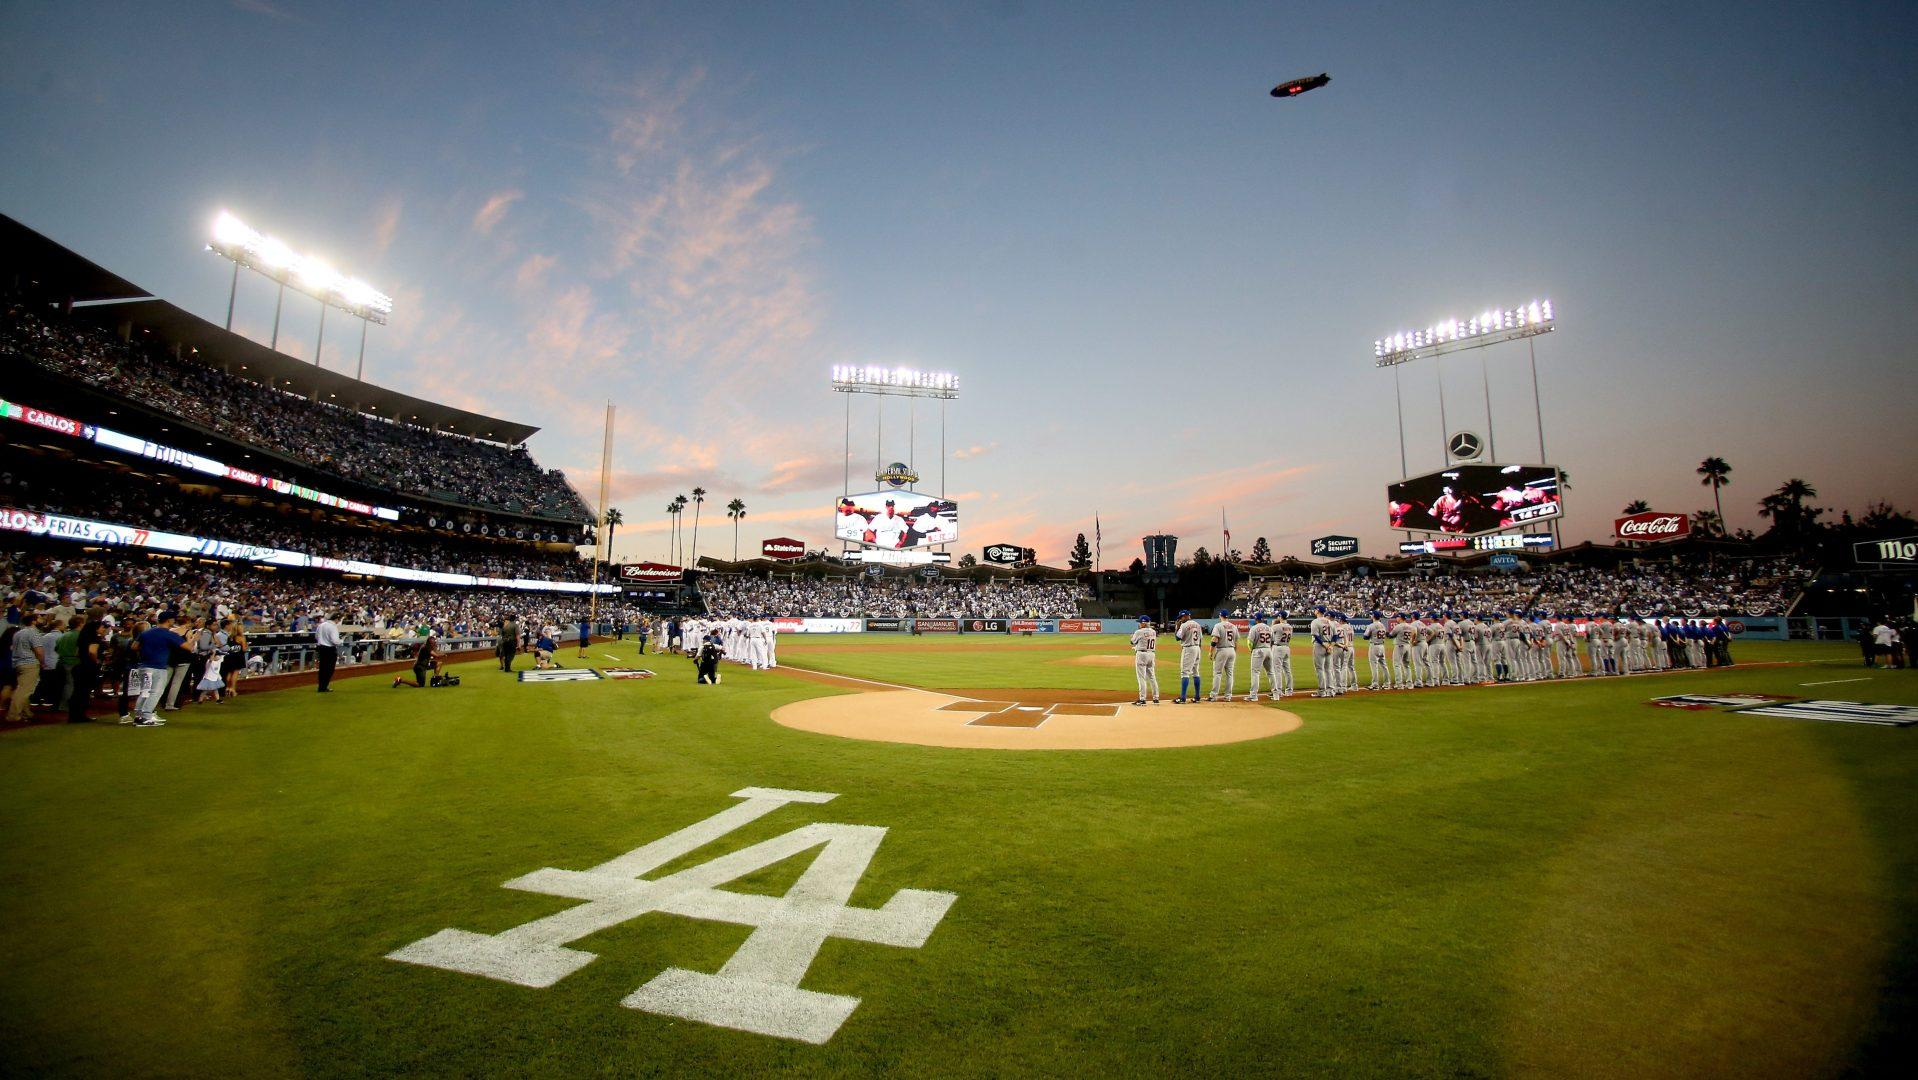 Angels block Dodgers' attempt at doing something cool